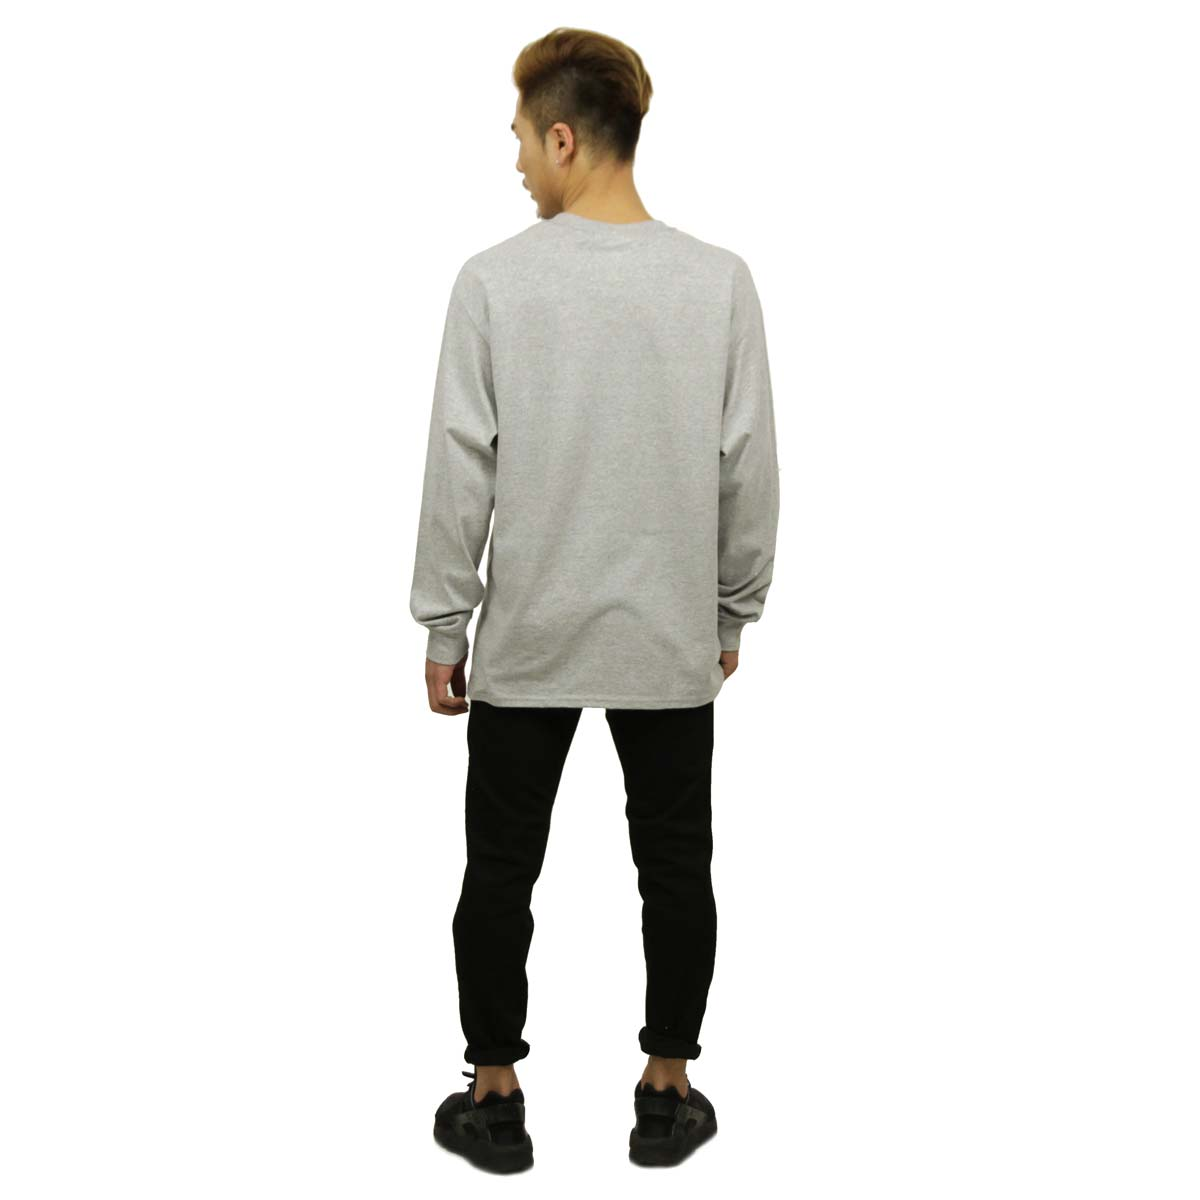 チャンピオン CHAMPION 正規品 メンズ 長袖Tシャツ L/S TEE T2229 Cotton Long Sleeve Tee 806-OXFORDGREY C logo on left sleeve